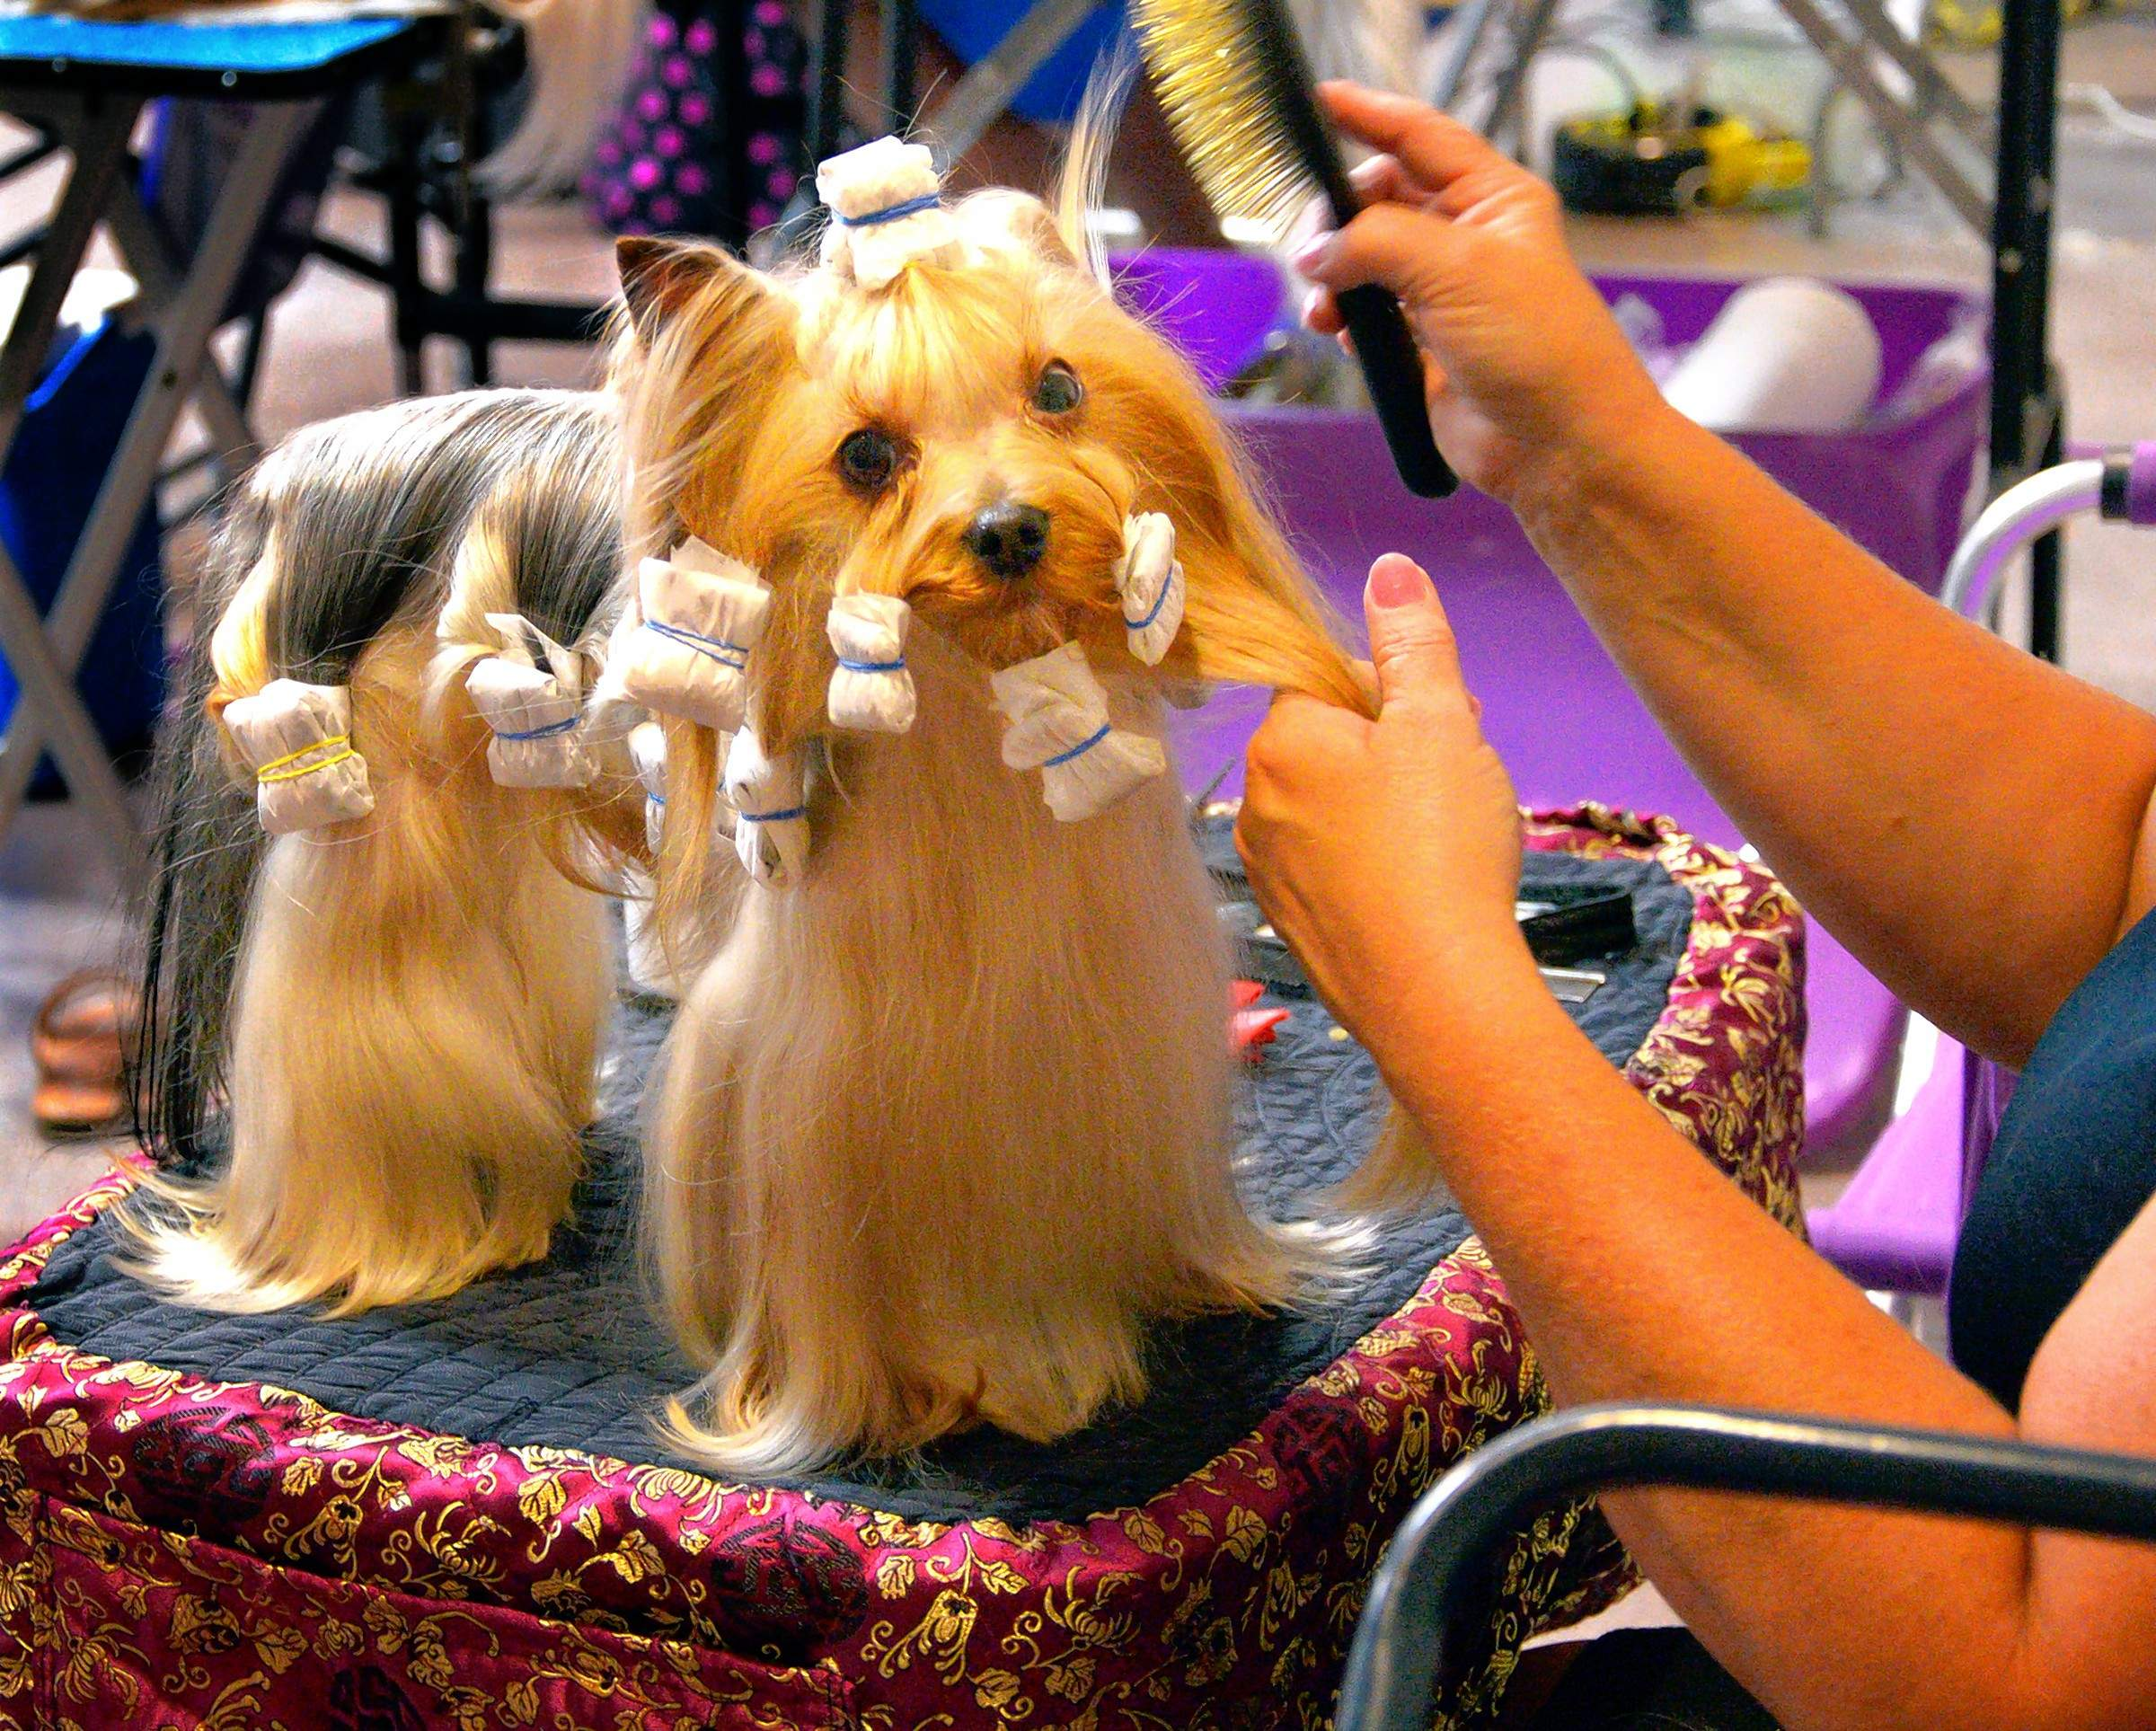 """A little Yorkshire terrier, Bentley, gets """"wraps"""" on his coat after his turn in the show ring. His groomer, Anna Stringer of Bowling Green, Kentucky, says Bentley gets wrapped every day, to protect his hair. She said Bentley is owned by a friend who lives in Canada."""